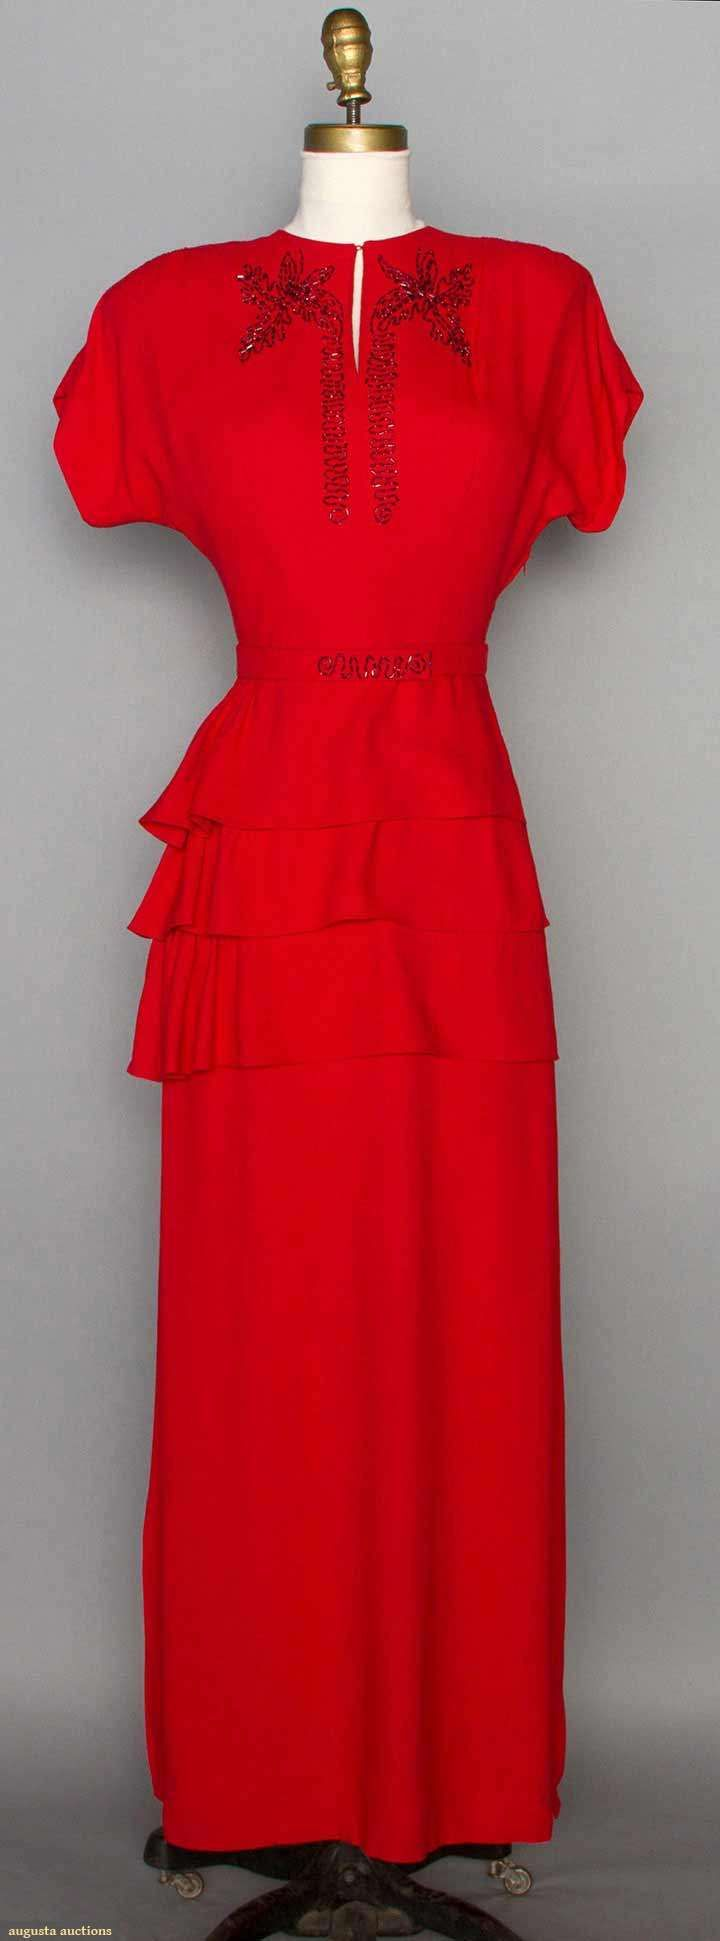 Beaded Red Evening Dress, 1940s, via Augusta Auctions. ,